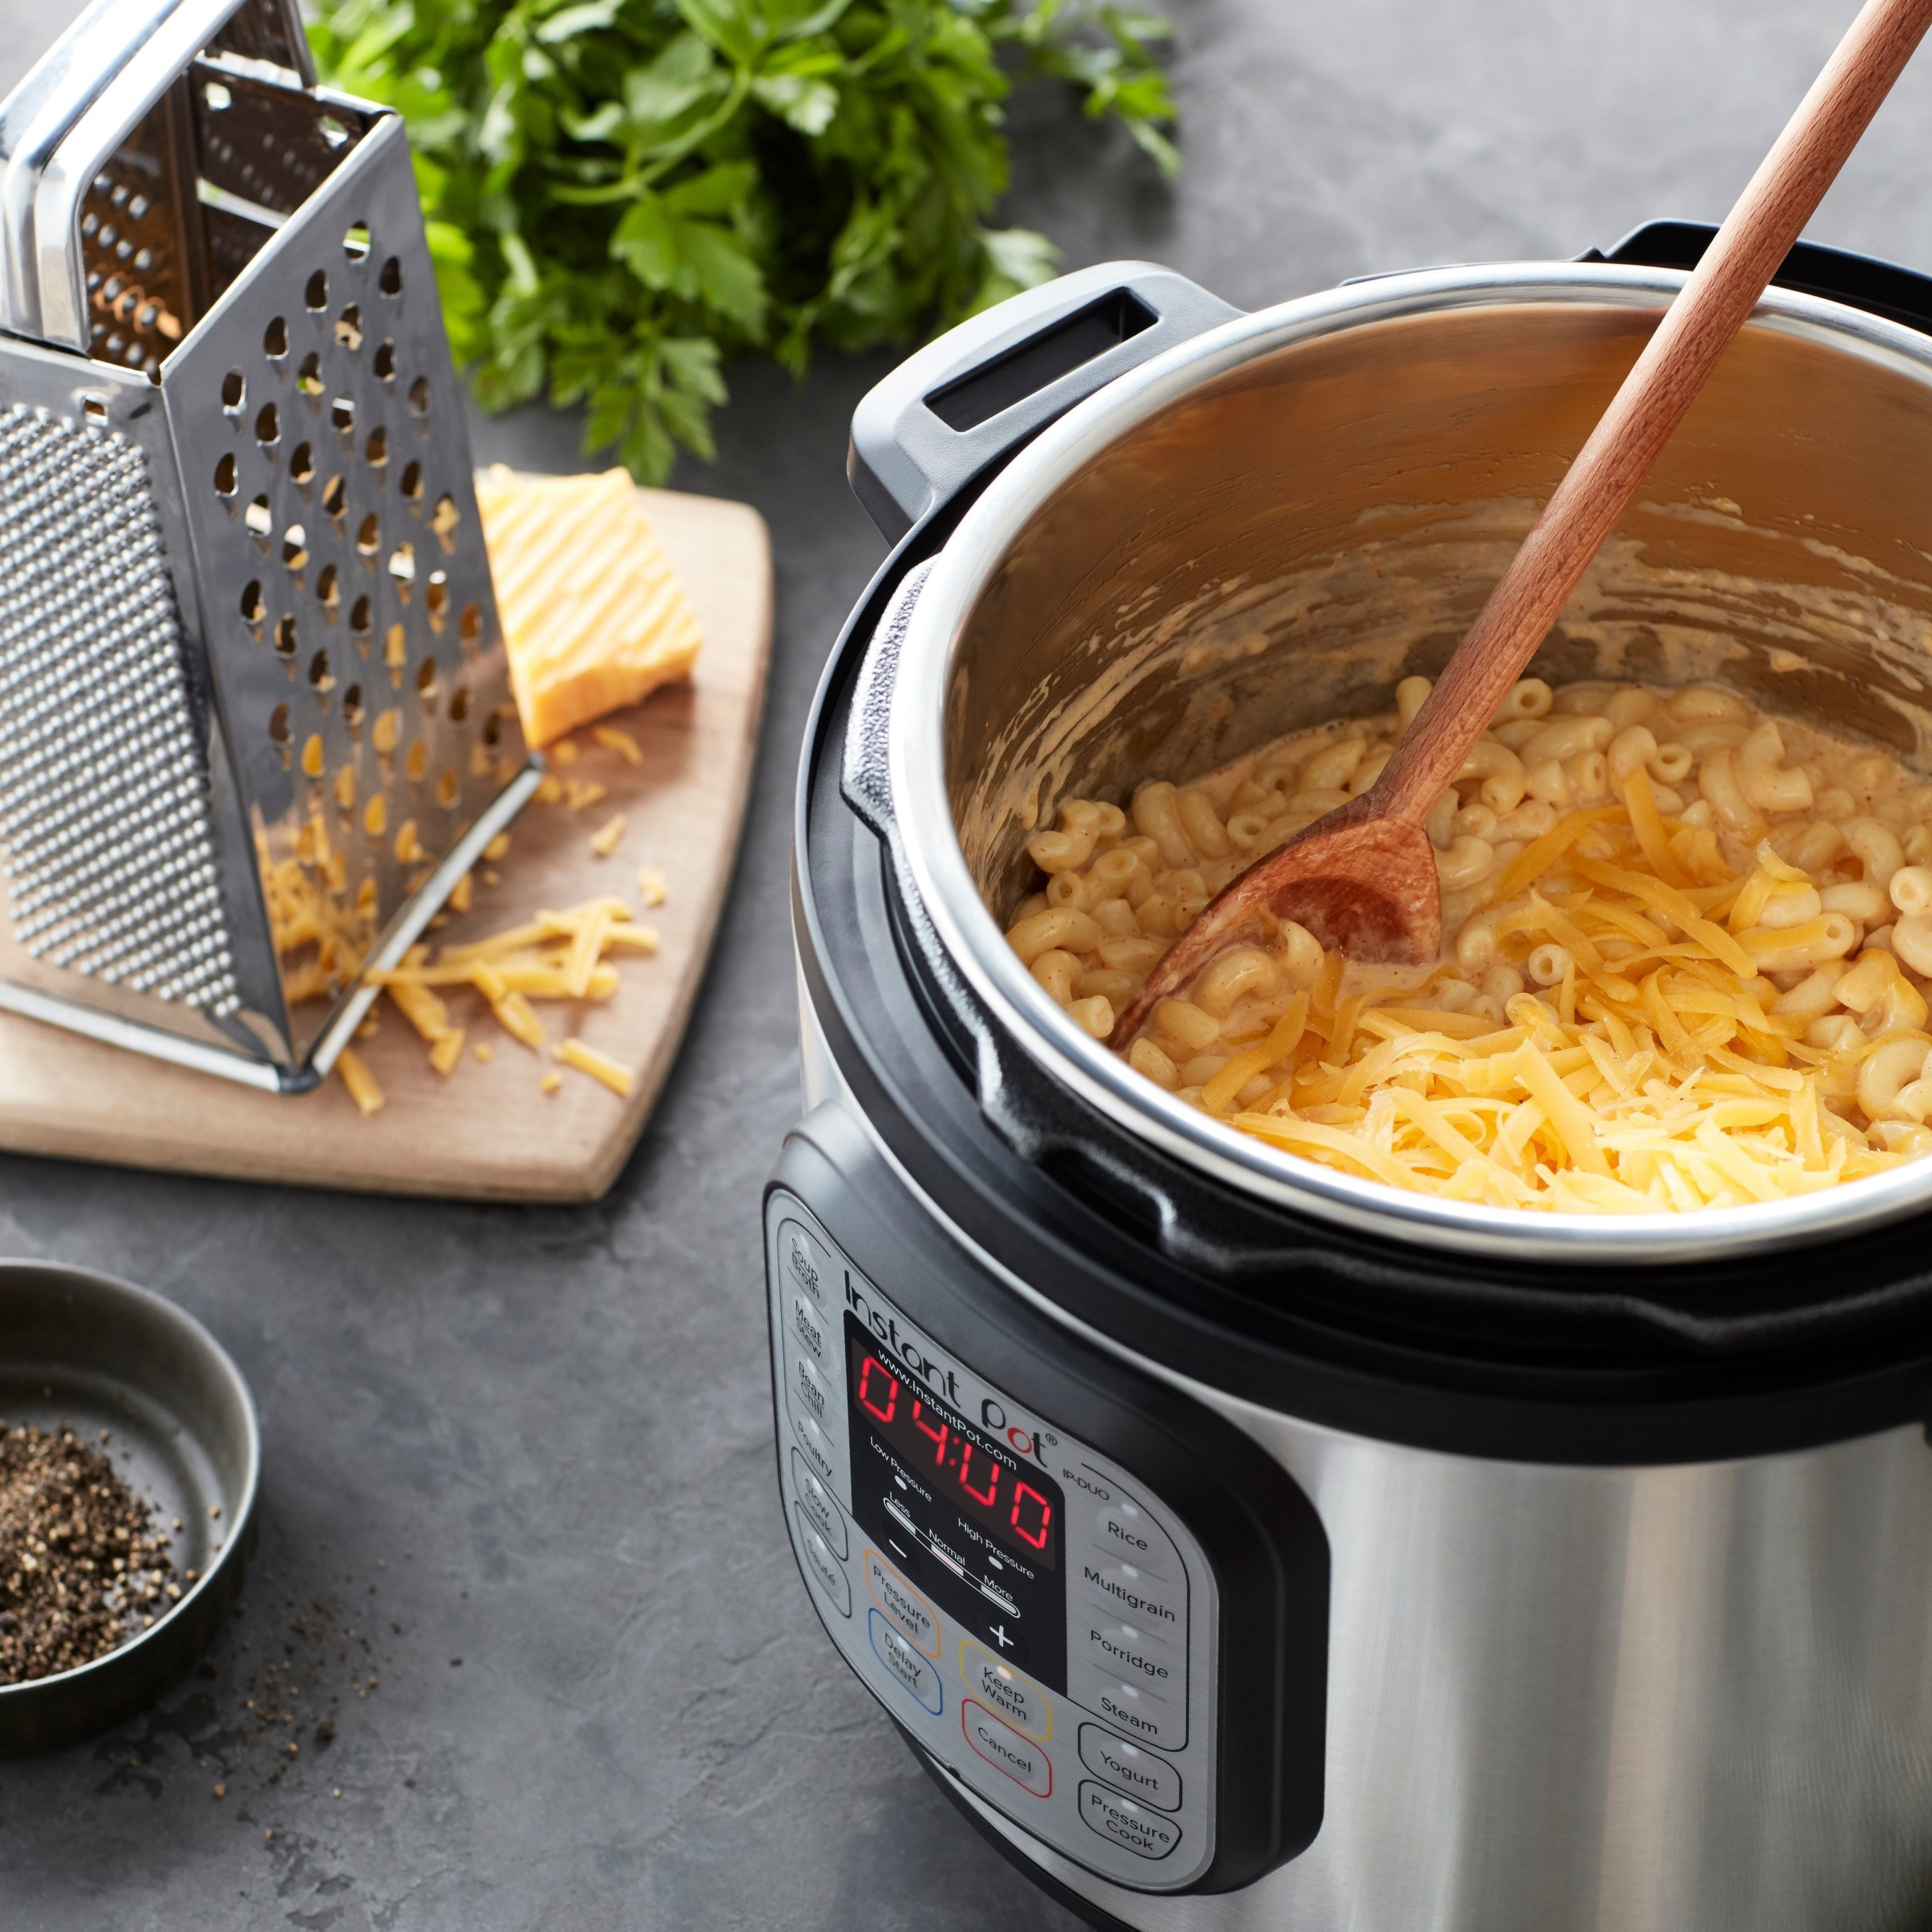 The slow cooker making mac and cheese